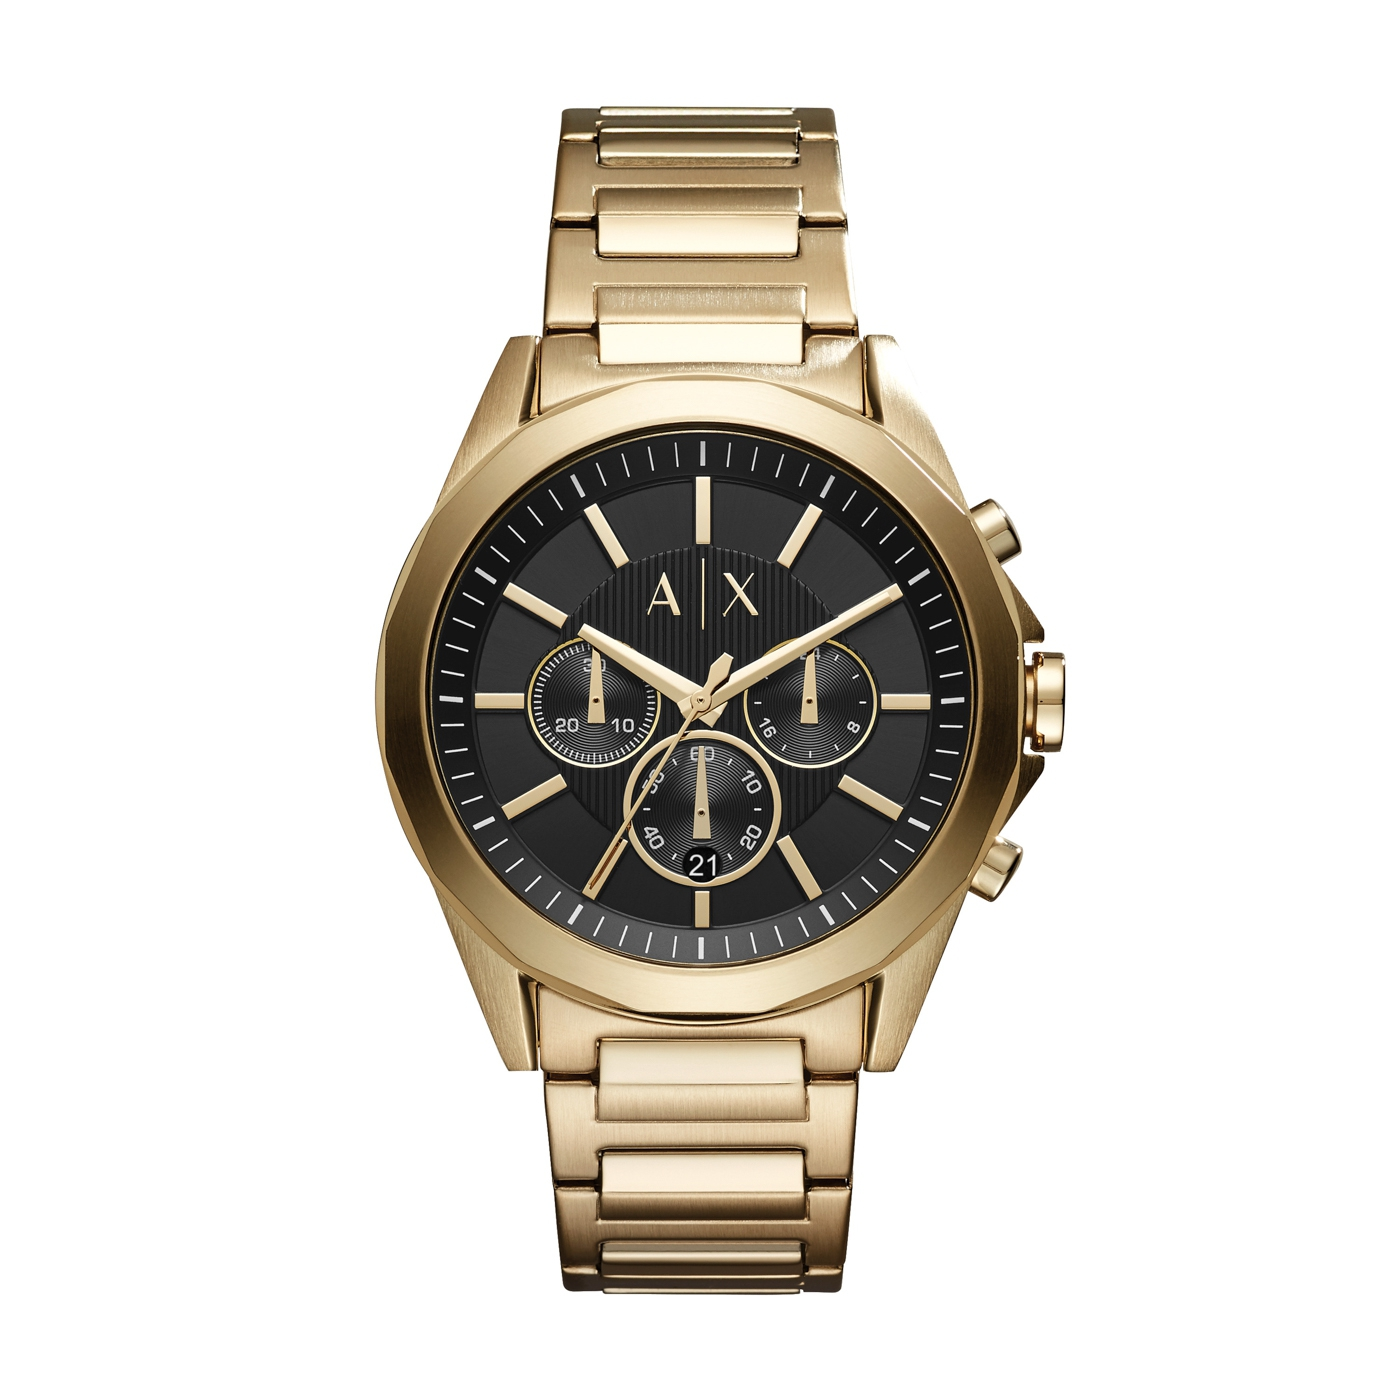 Immagine di Armani Exchange Drexler watch AX2611